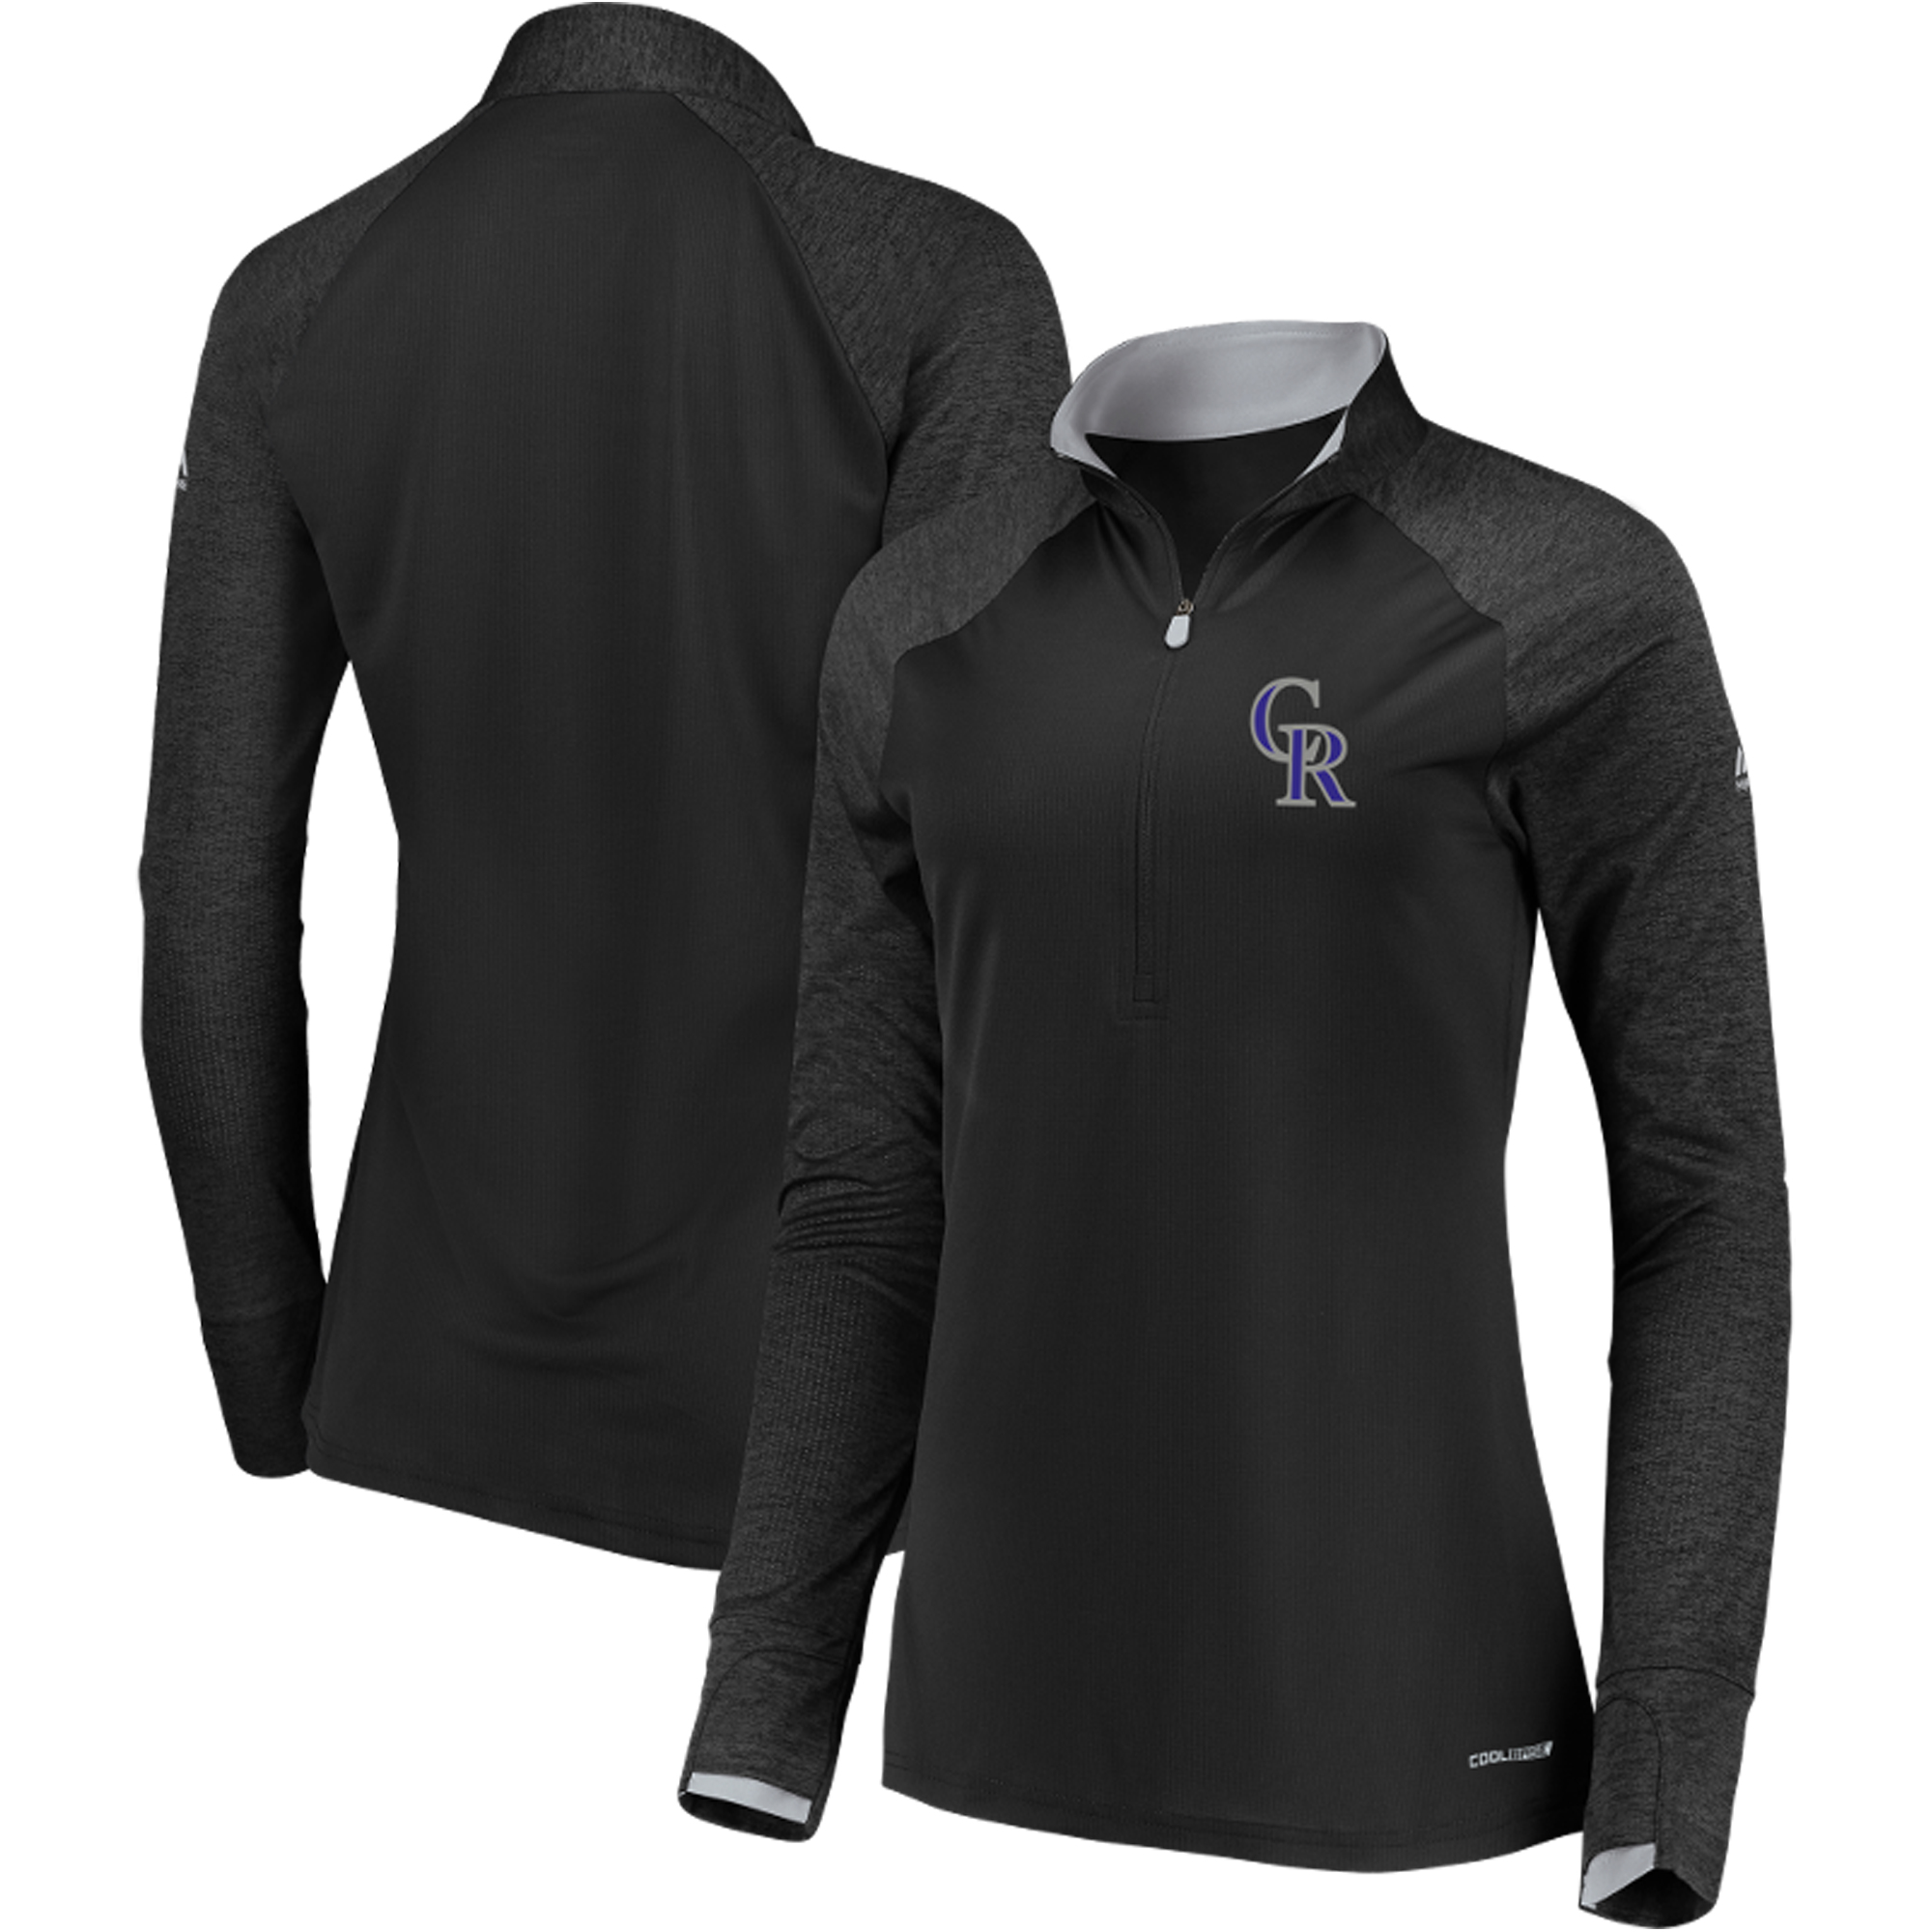 Colorado Rockies Majestic Women's Extremely Clear Cool Base Raglan 1 2-Zip Jacket Black by MAJESTIC LSG